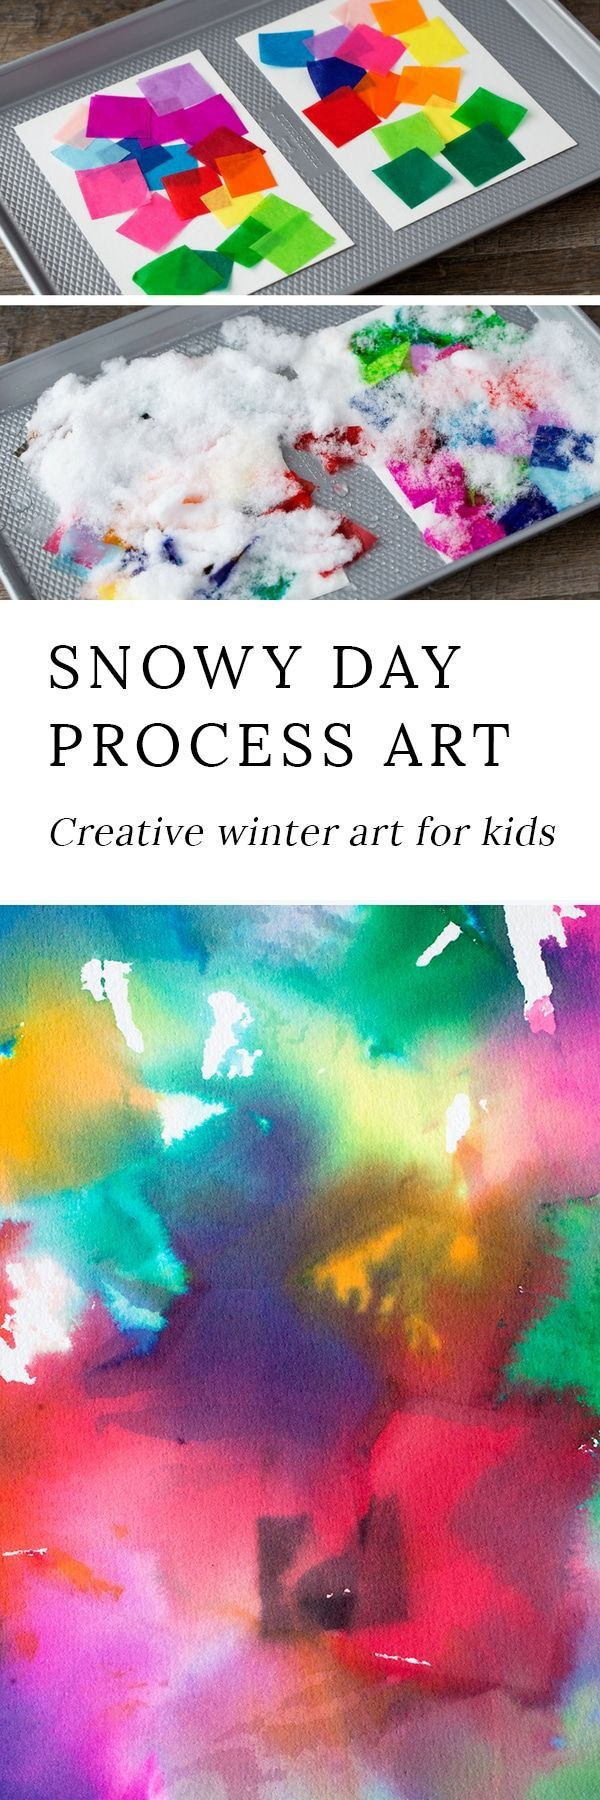 Snowy Day Process Art : Creative winter art for kids